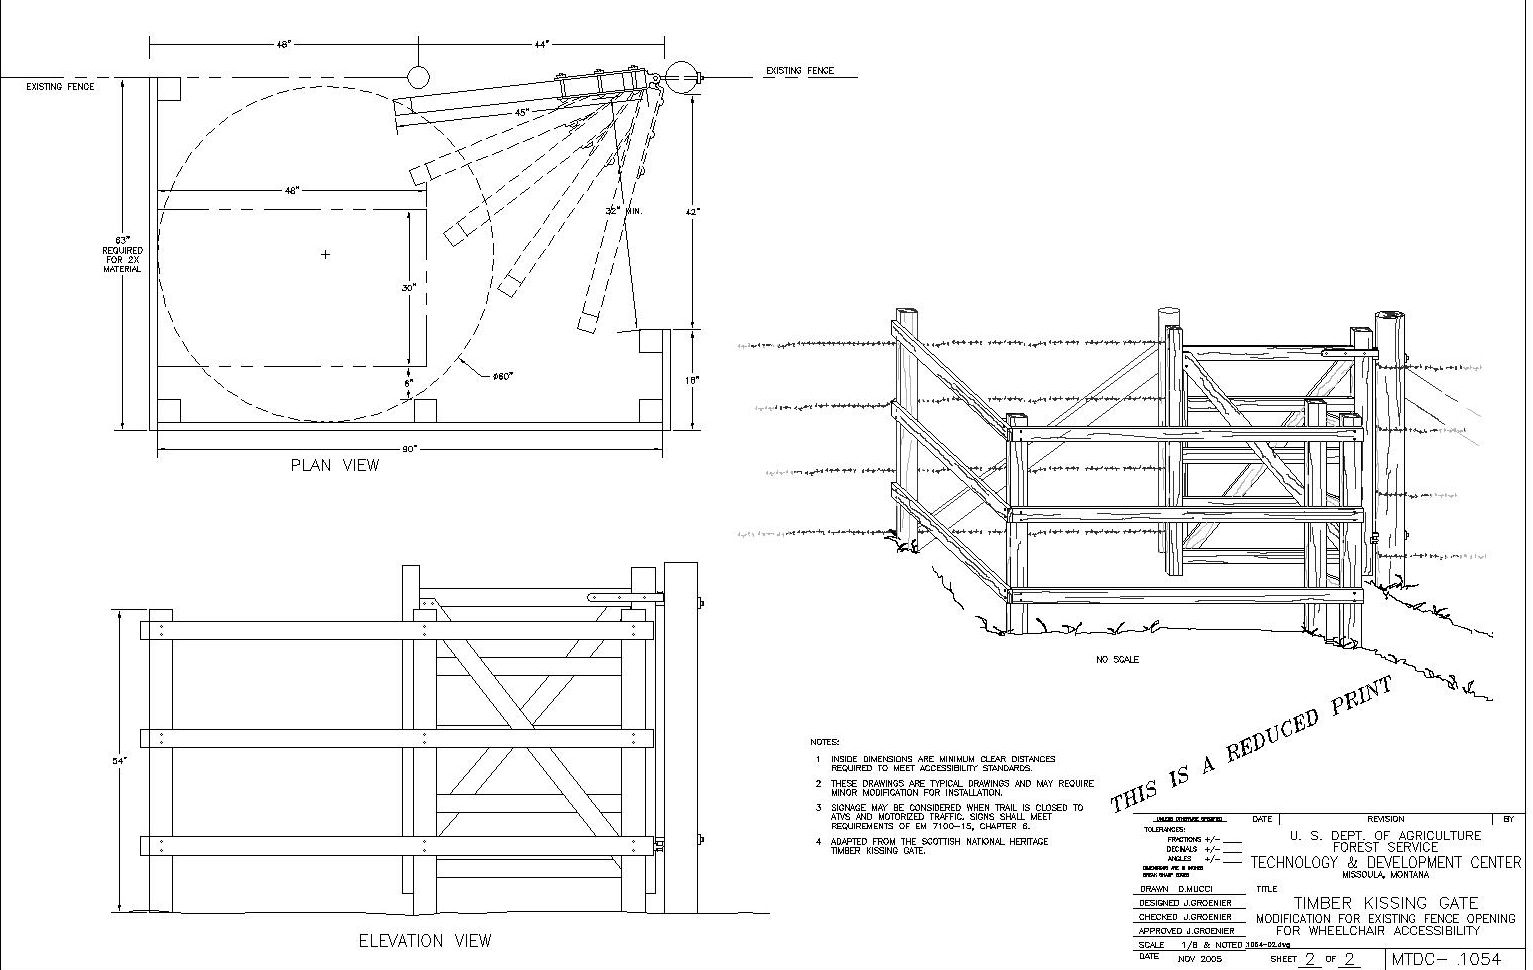 wood gate diagrams schematic librarywooden gate construction plans timber kissing gate modification